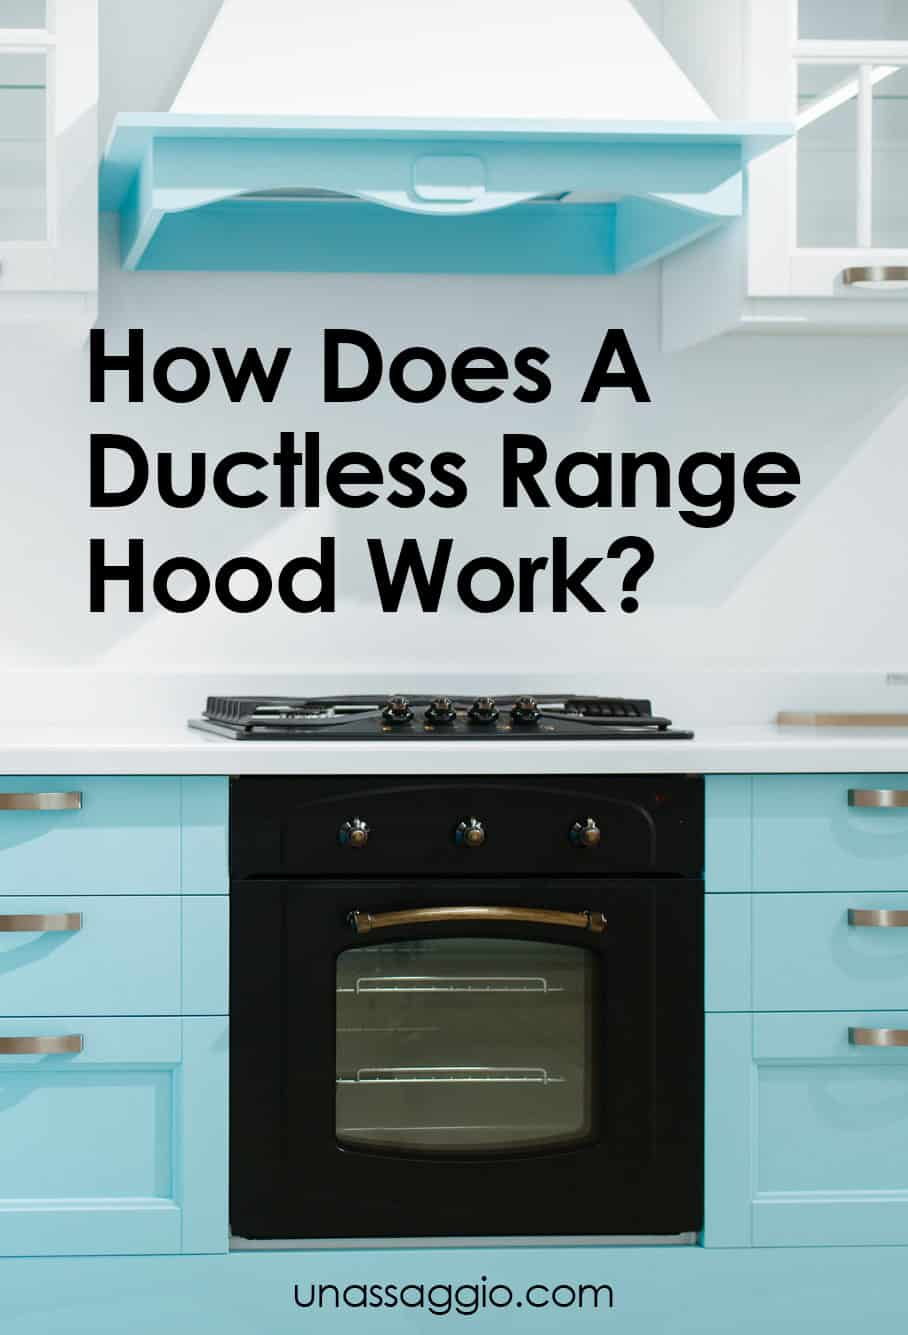 How Does A Ductless Range Hood Work